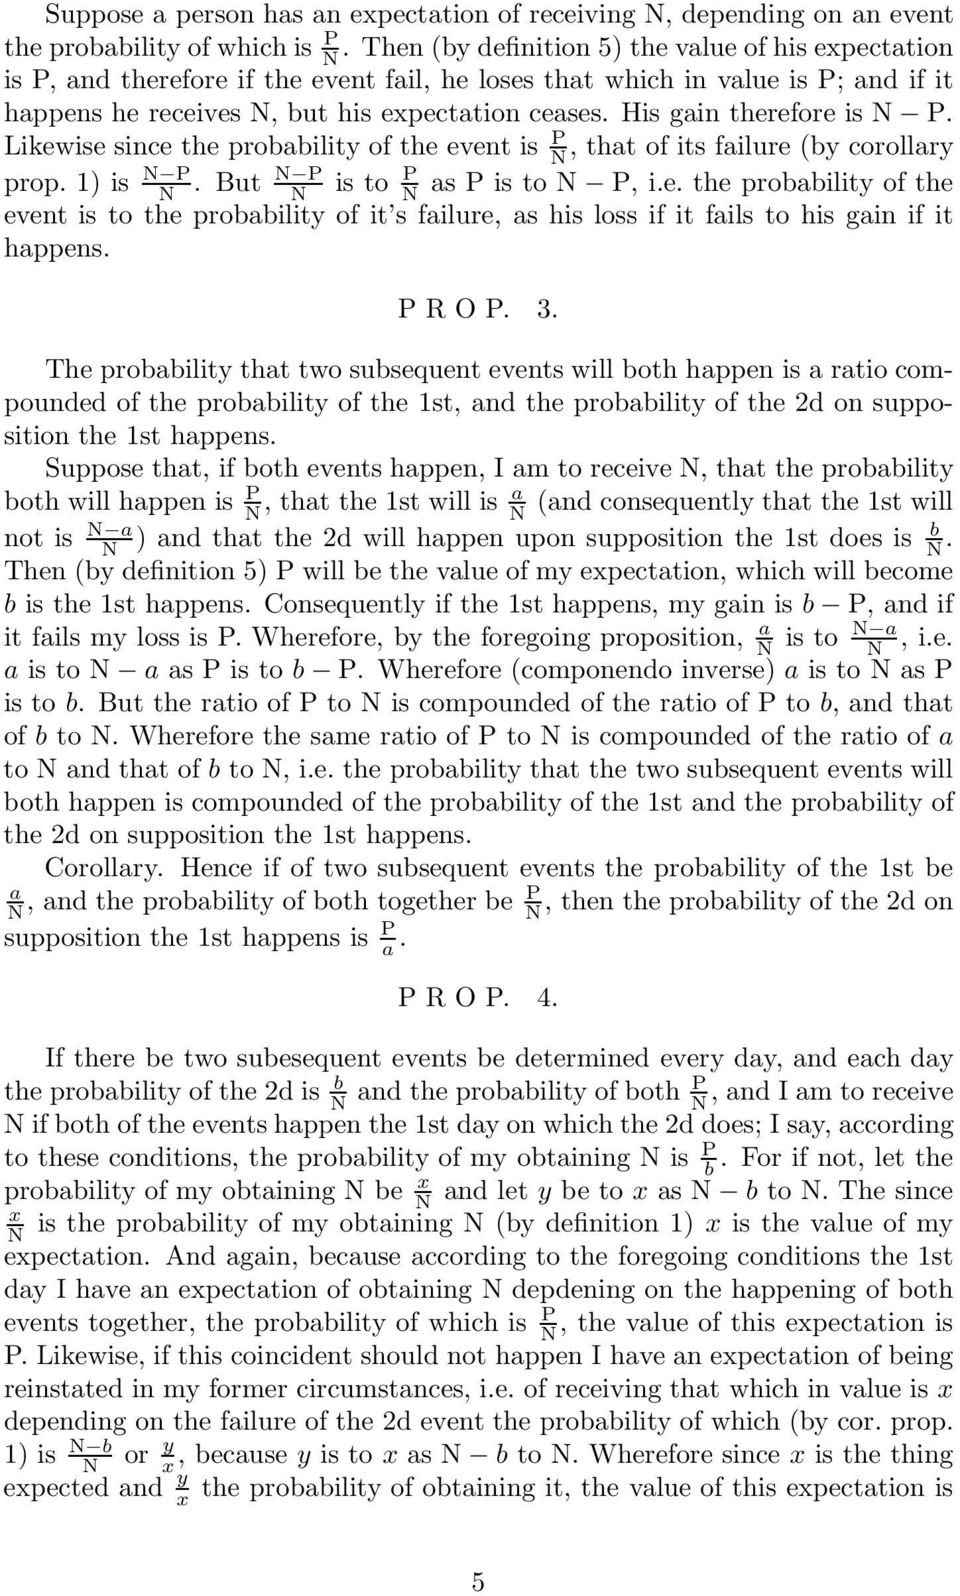 His gain therefore is N P. Likewise since the probability of the event is P N, that of its failure (by corollary prop. 1) is N P N P N. But N is to P N as P is to N P, i.e. the probability of the event is to the probability of it s failure, as his loss if it fails to his gain if it happens.